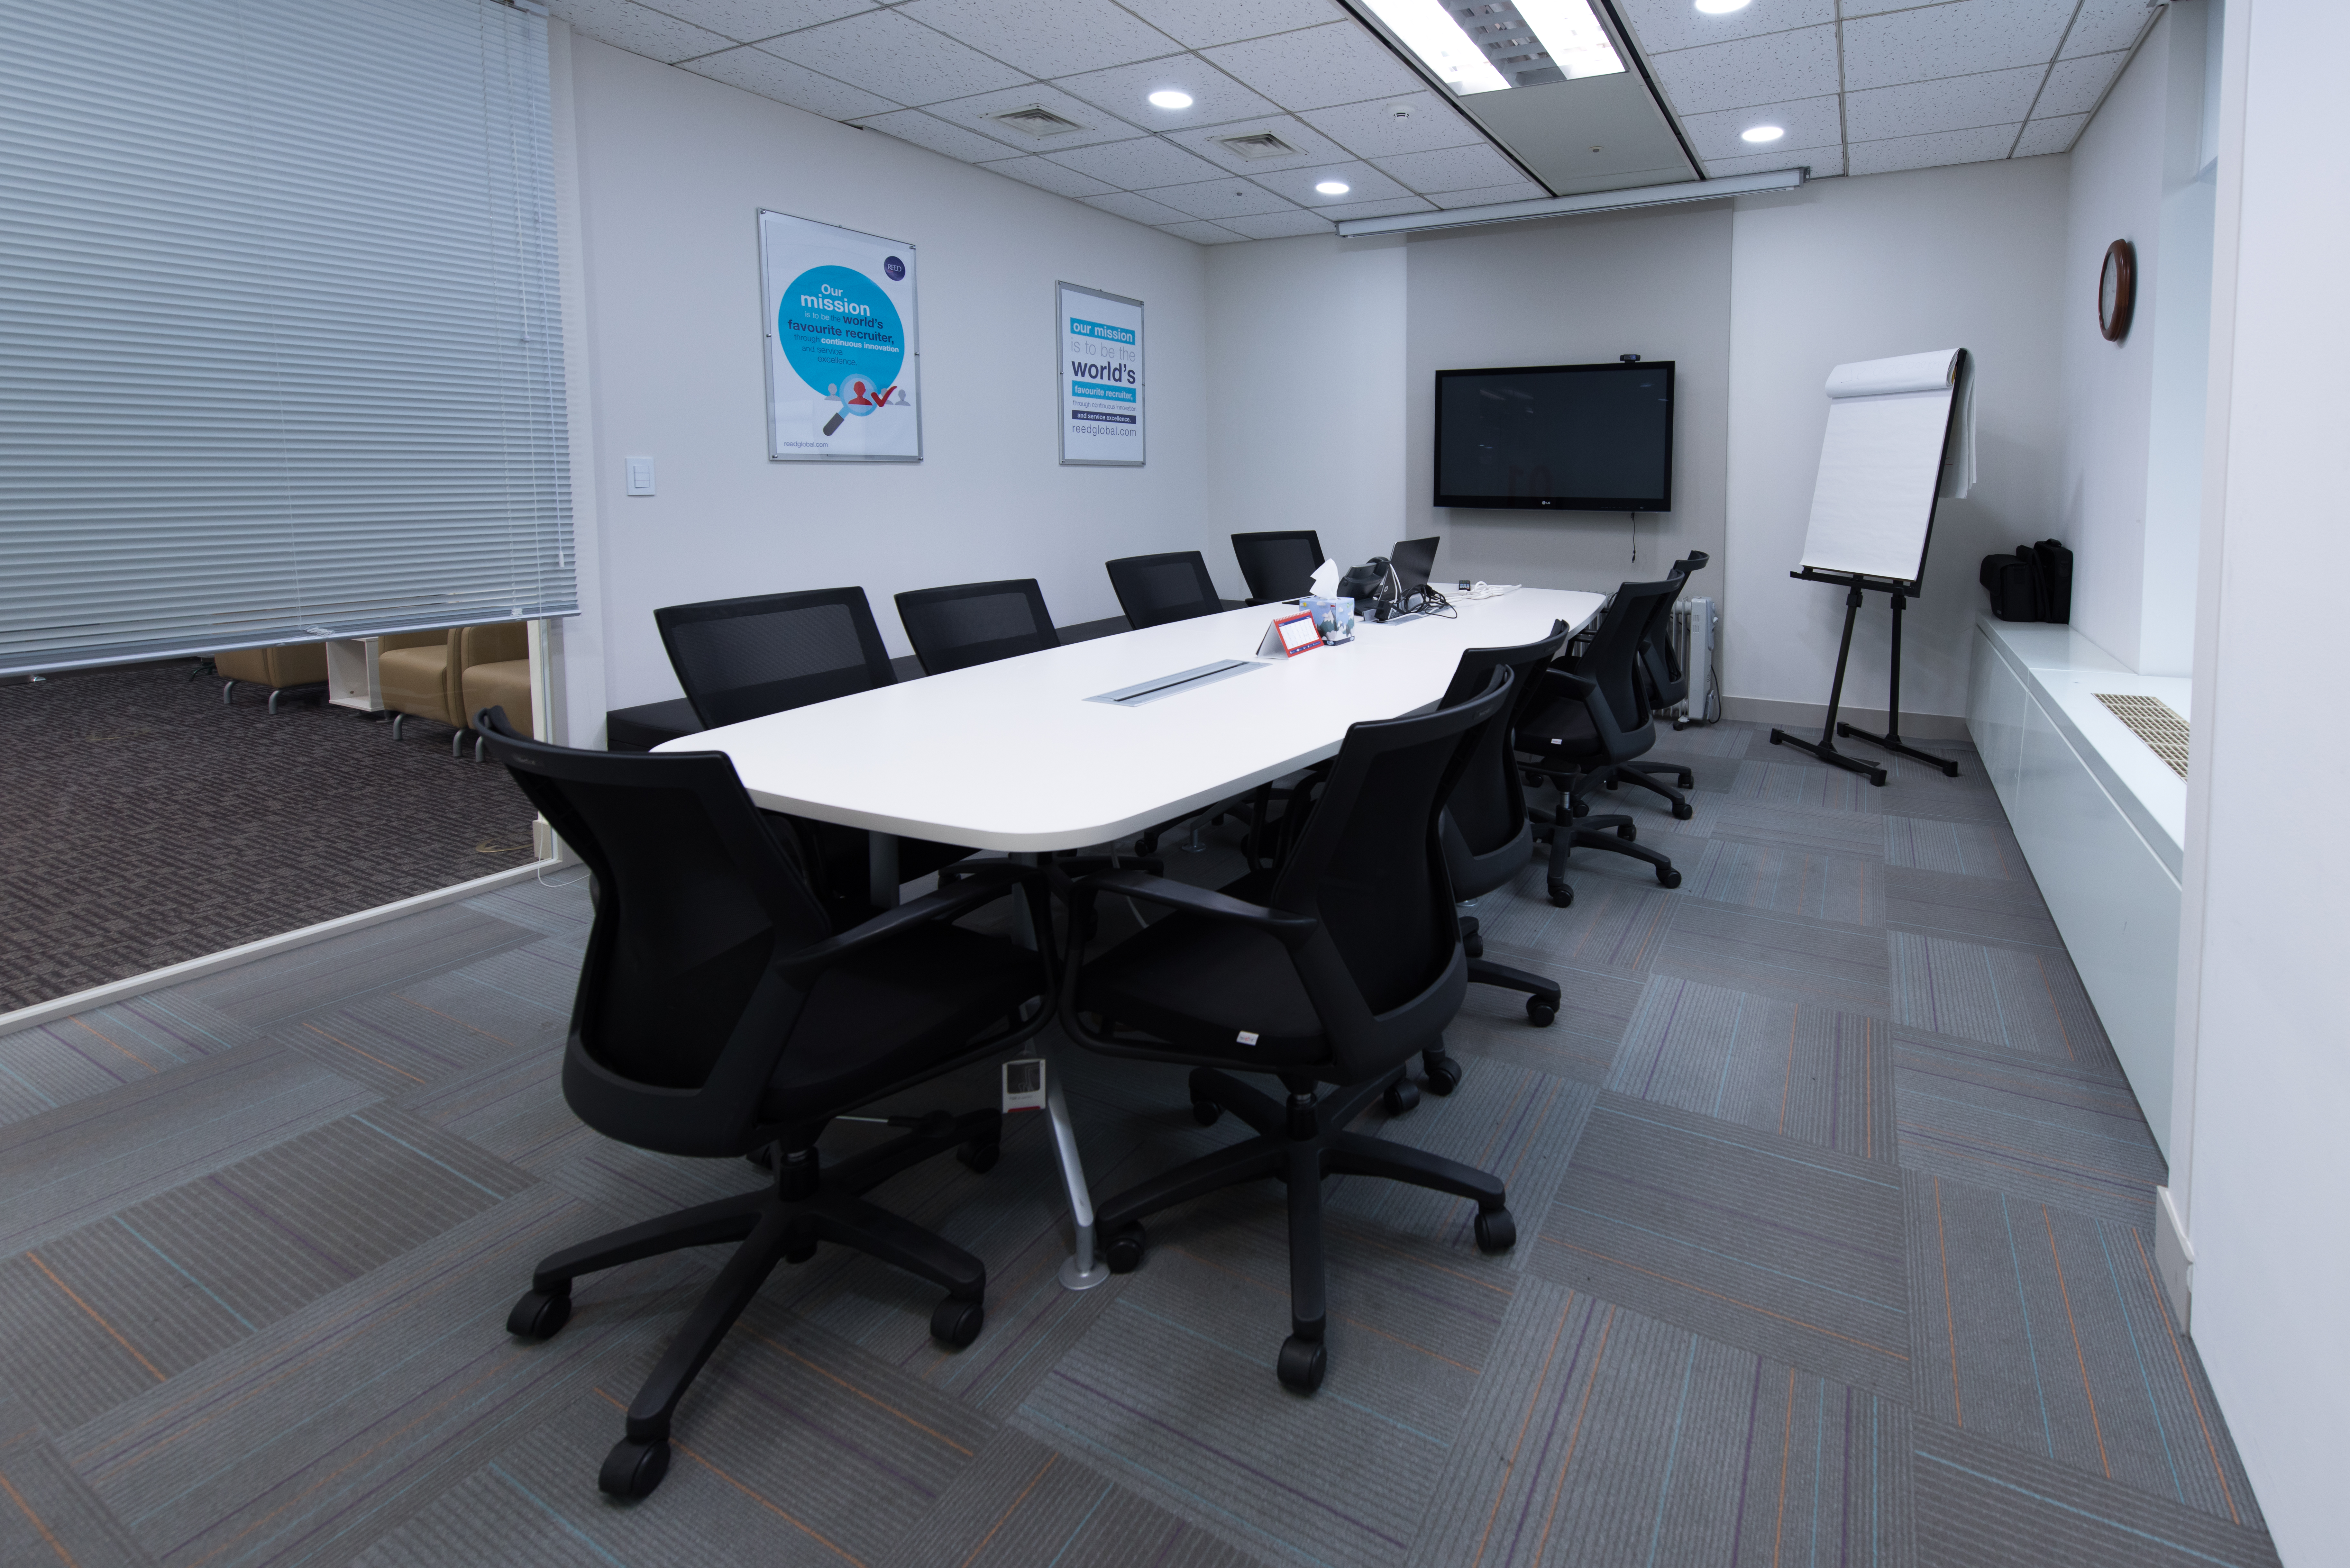 South korea office in Seoul - meeting room